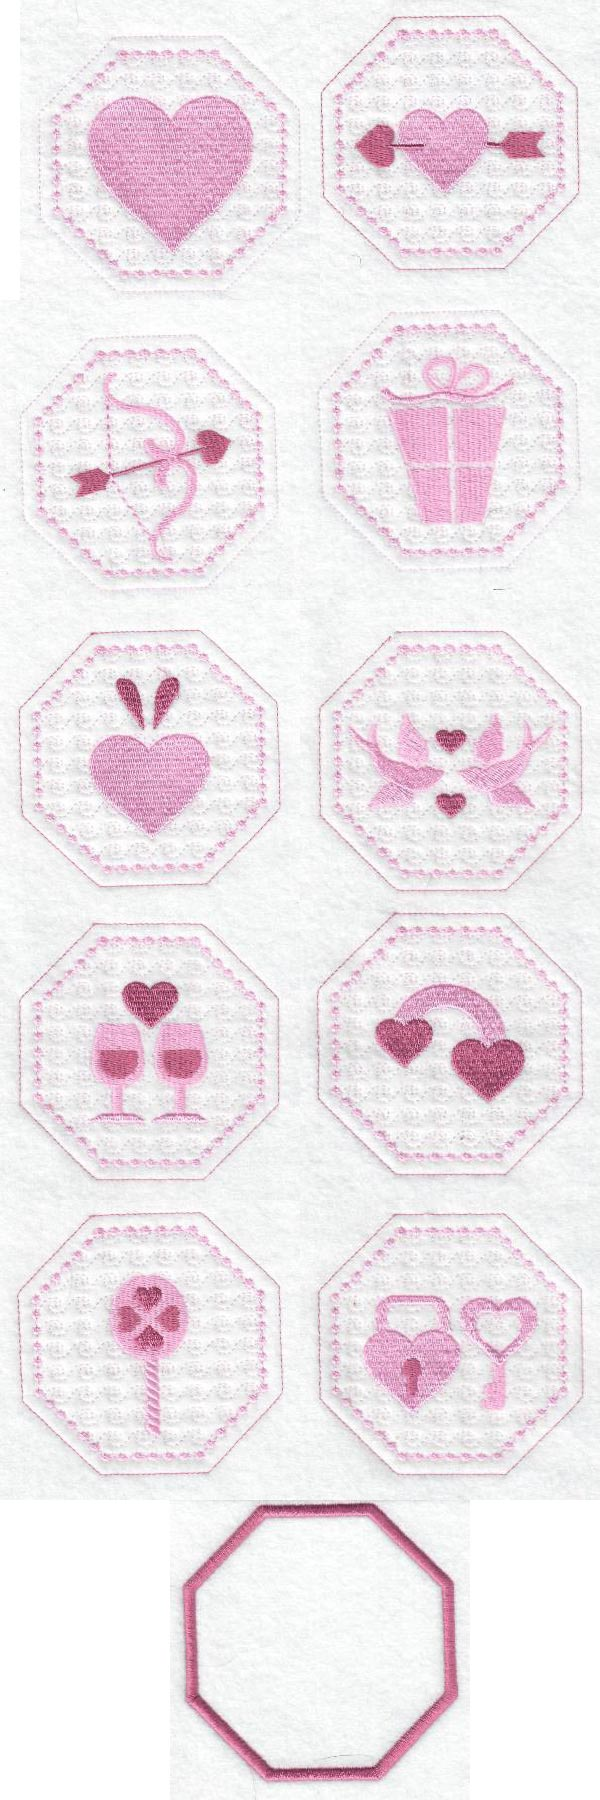 Candlewick Valentine Coasters Embroidery Machine Design Details